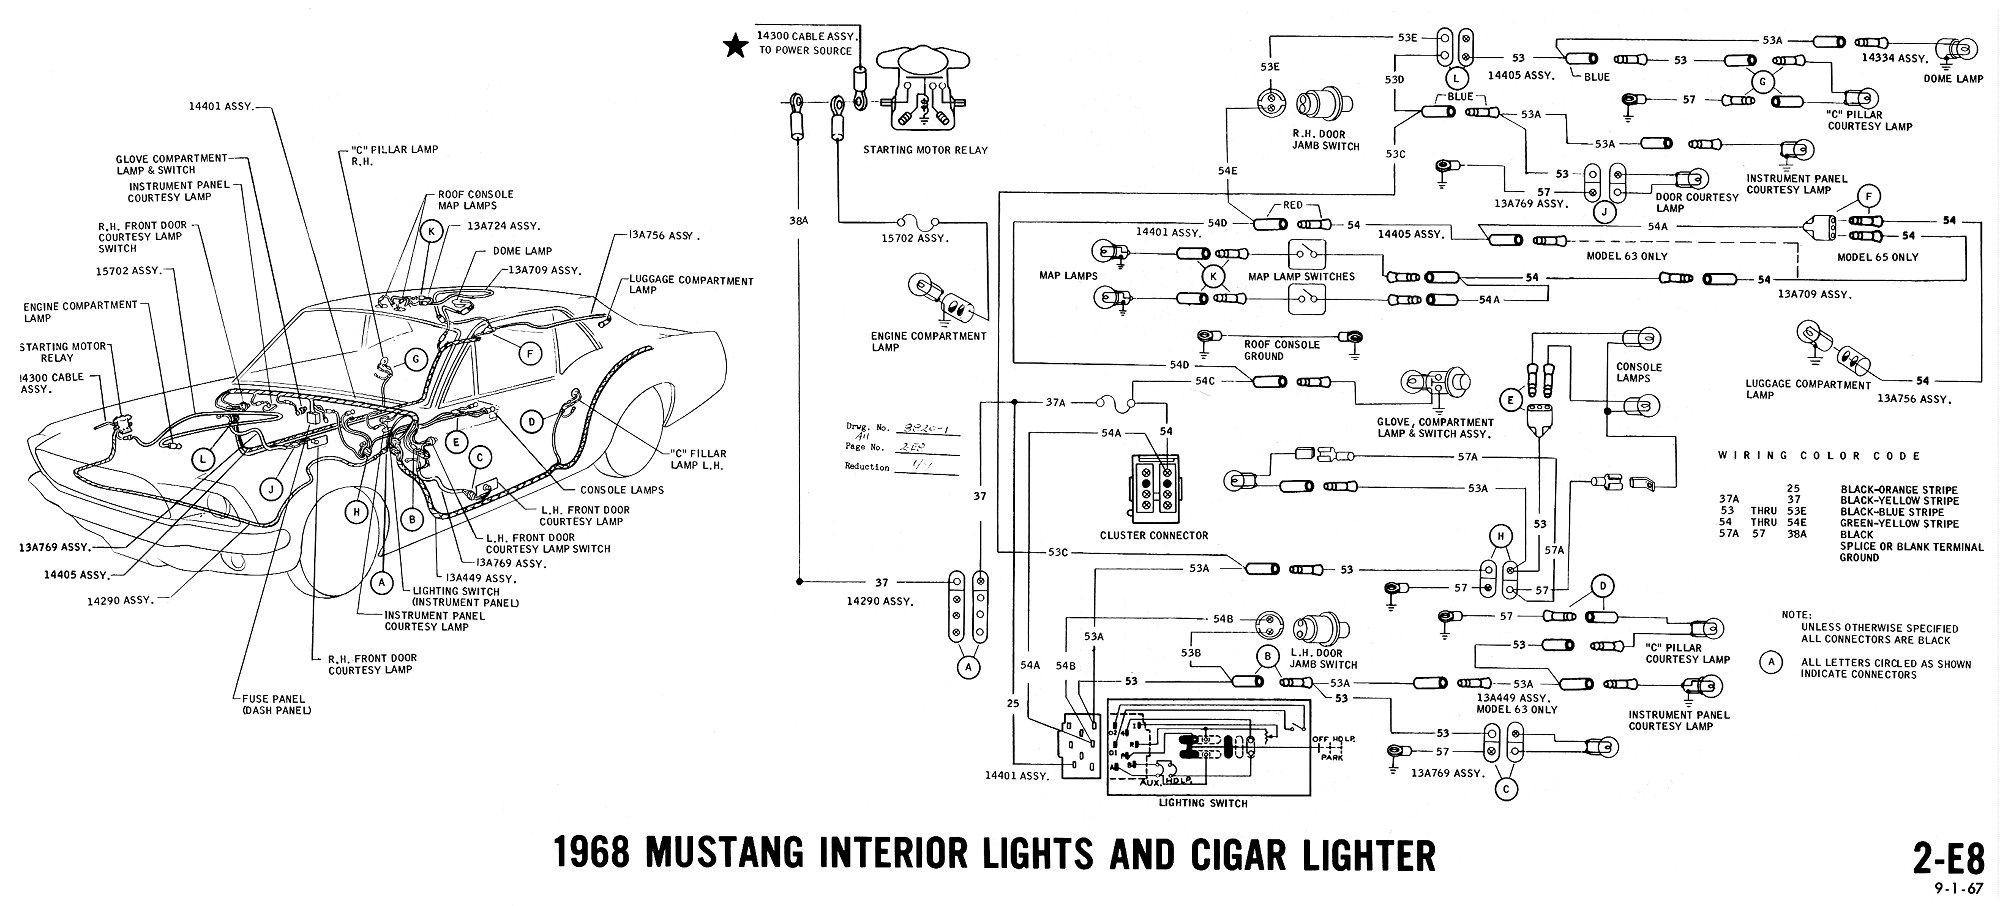 Wiring Diagram Free Sle Detail Ideas Fog L Start Building A 2476 Smartlabs Dimmer Switch 1968 Mustang Diagrams Evolving Software Rh Peterfranza Com